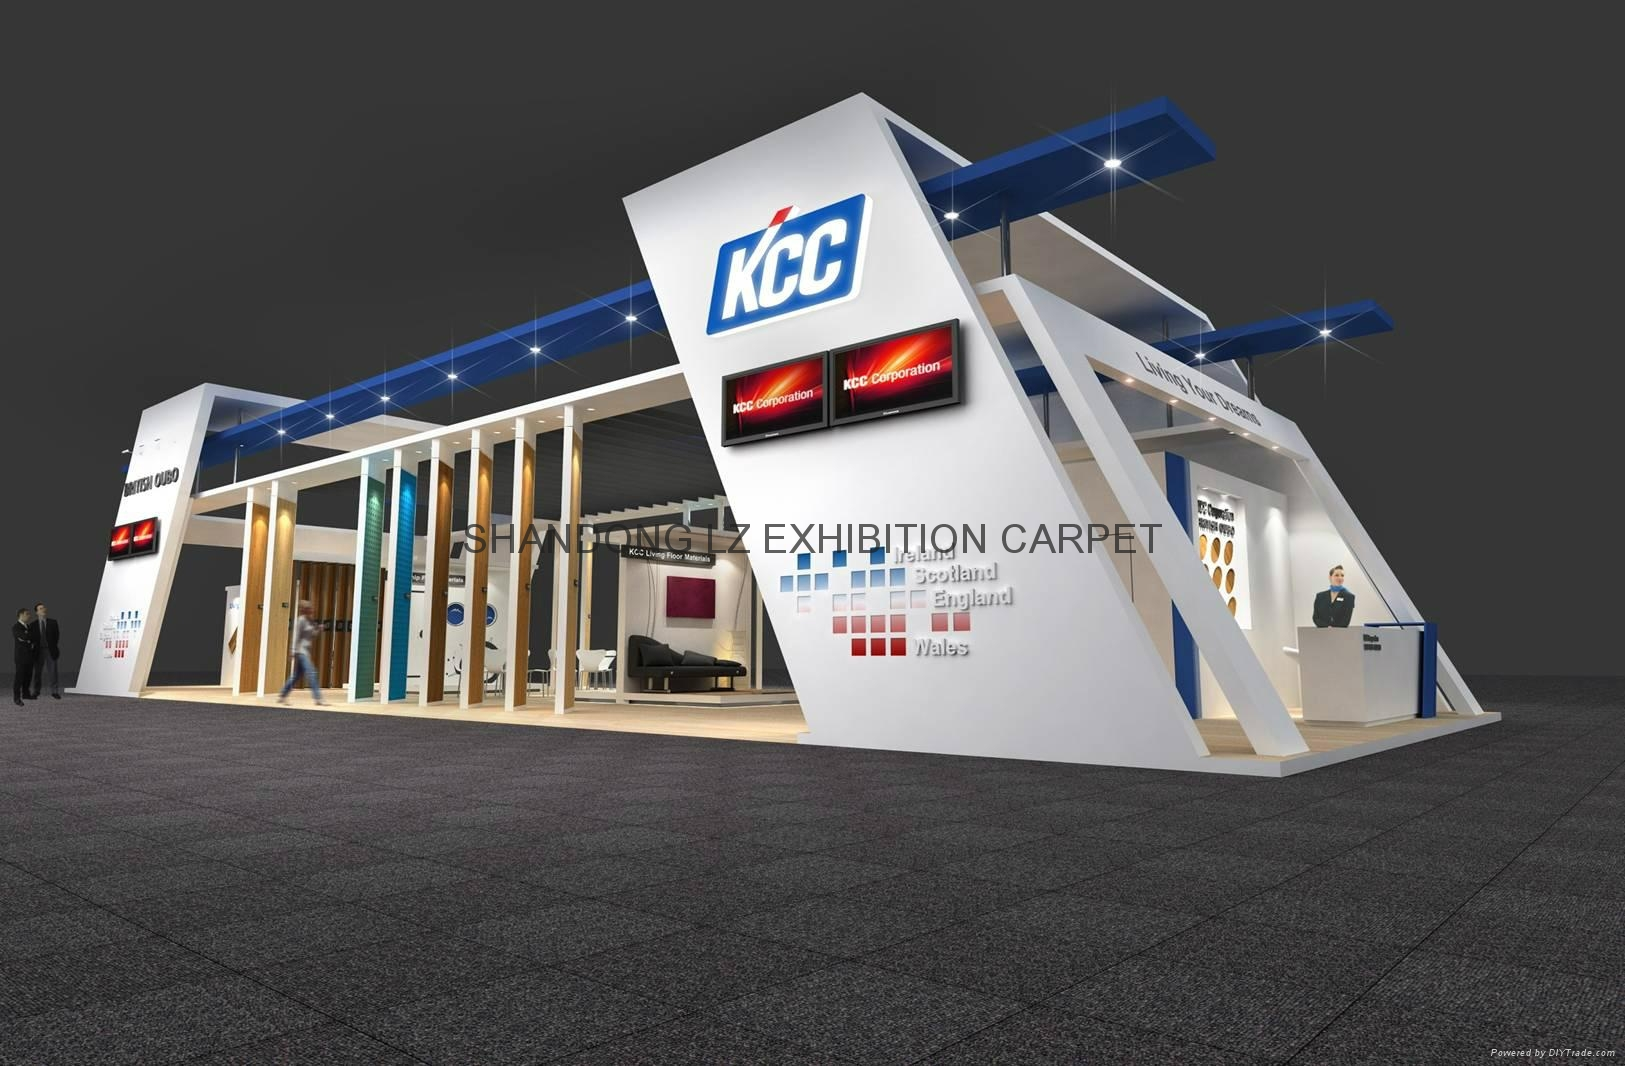 Exhibition floorcovering: Vinyl, rubber, needle punch, carpet tiles 7